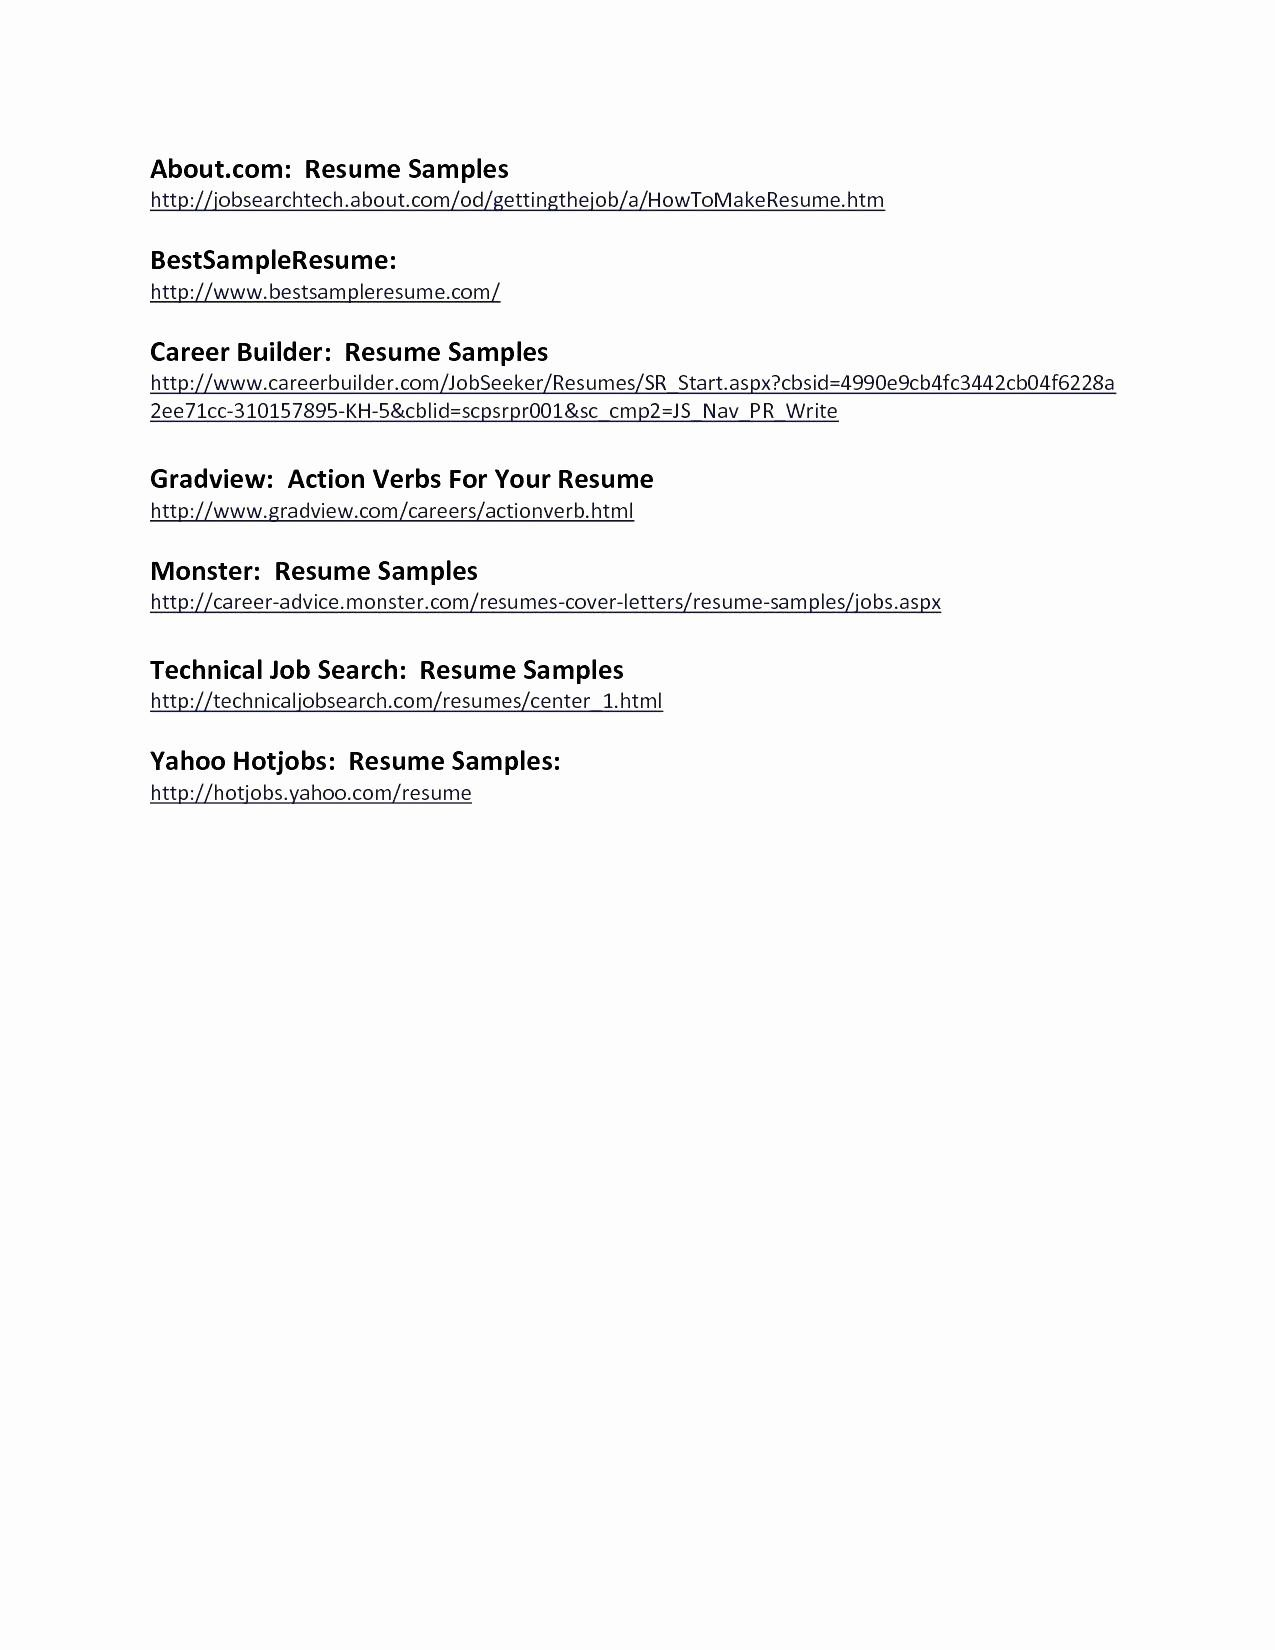 careerbuilder free resume template Collection-Career Builder Resume Best Professional Resume Template Free Awesome Job Resume Sample Unique 16-s